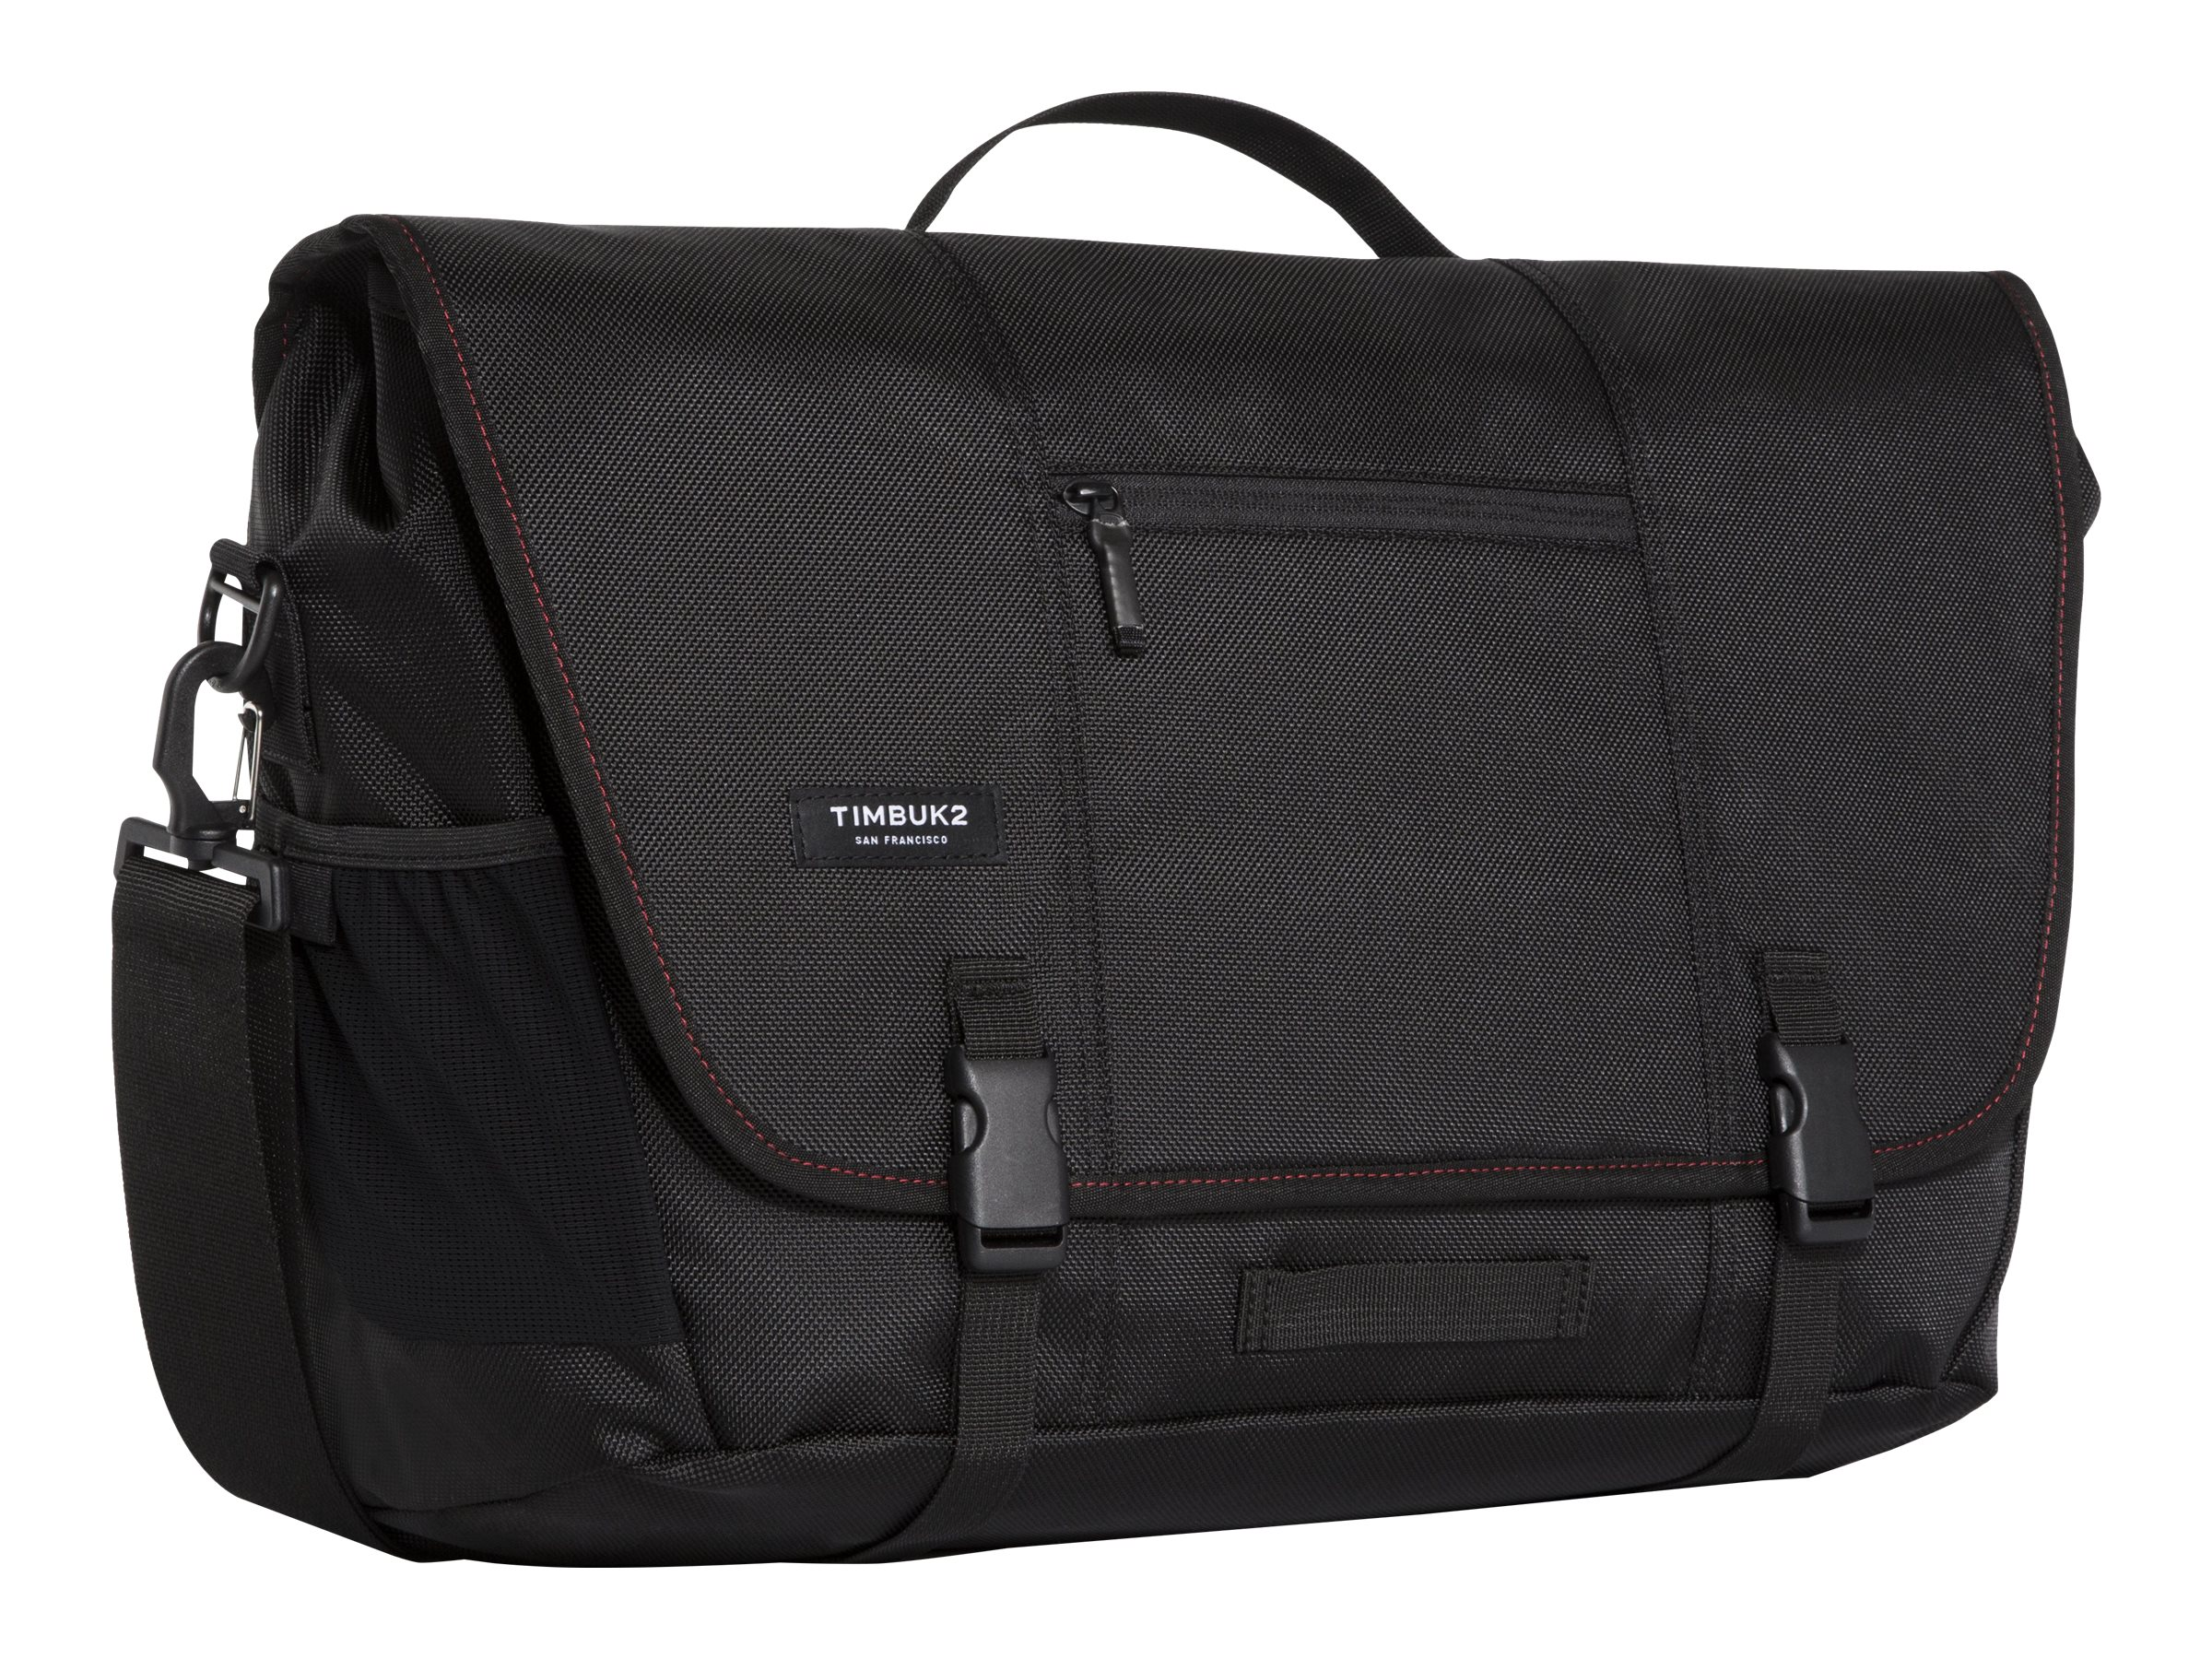 Timbuk2 Meta Messenger 15 notebook carrying case